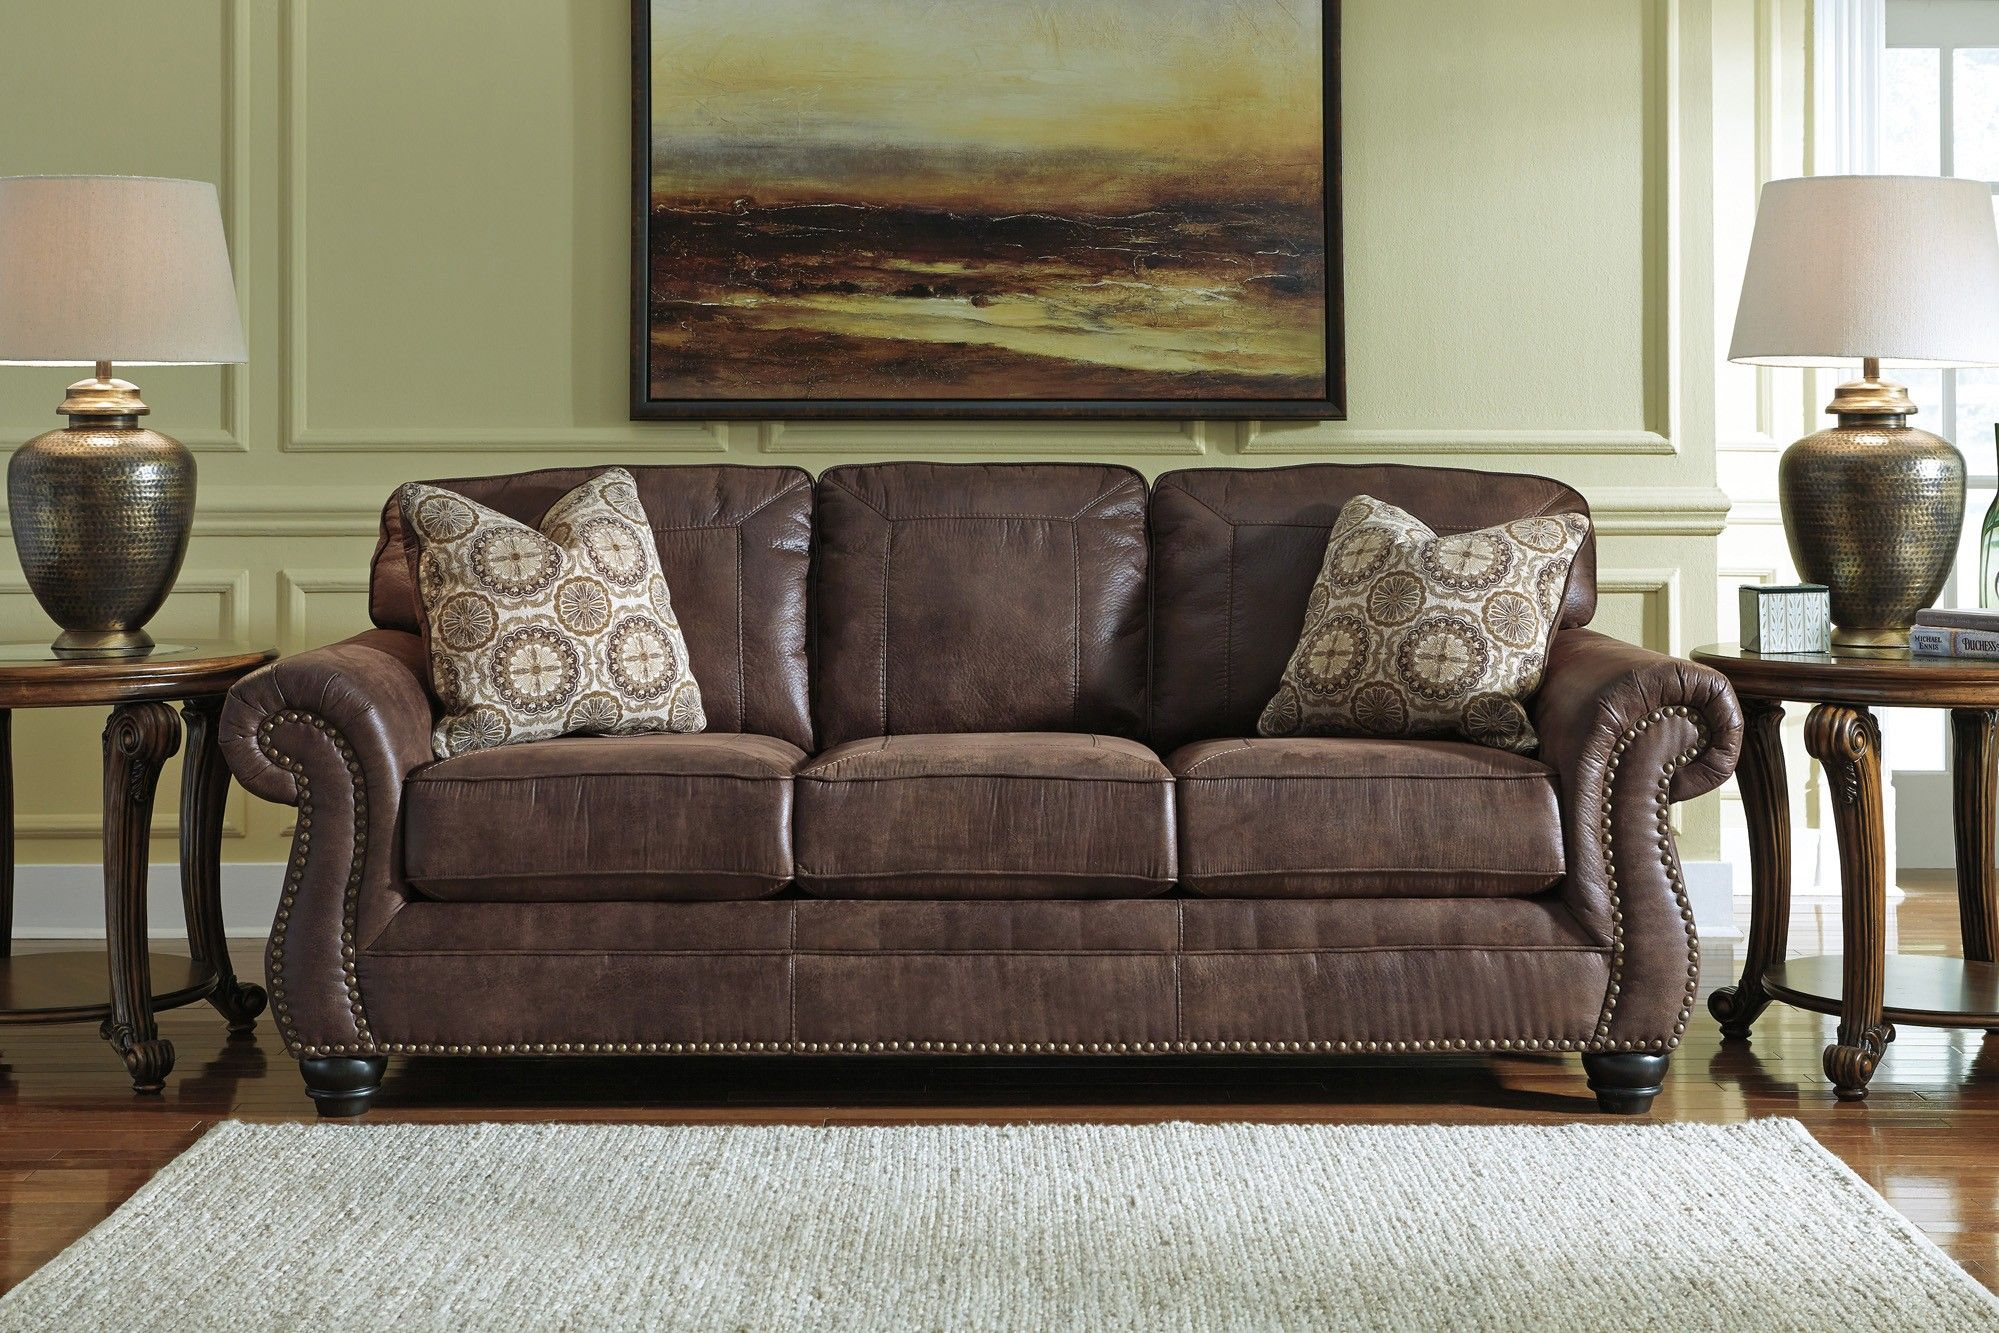 1000 Images Living Room On. Entertainment Living Room Furniture. Modern Wall Units Room Wall Units Wall Unit Vetro Collection. 16 Fabulous Earth Tones Living Room Designs Entertainment Units